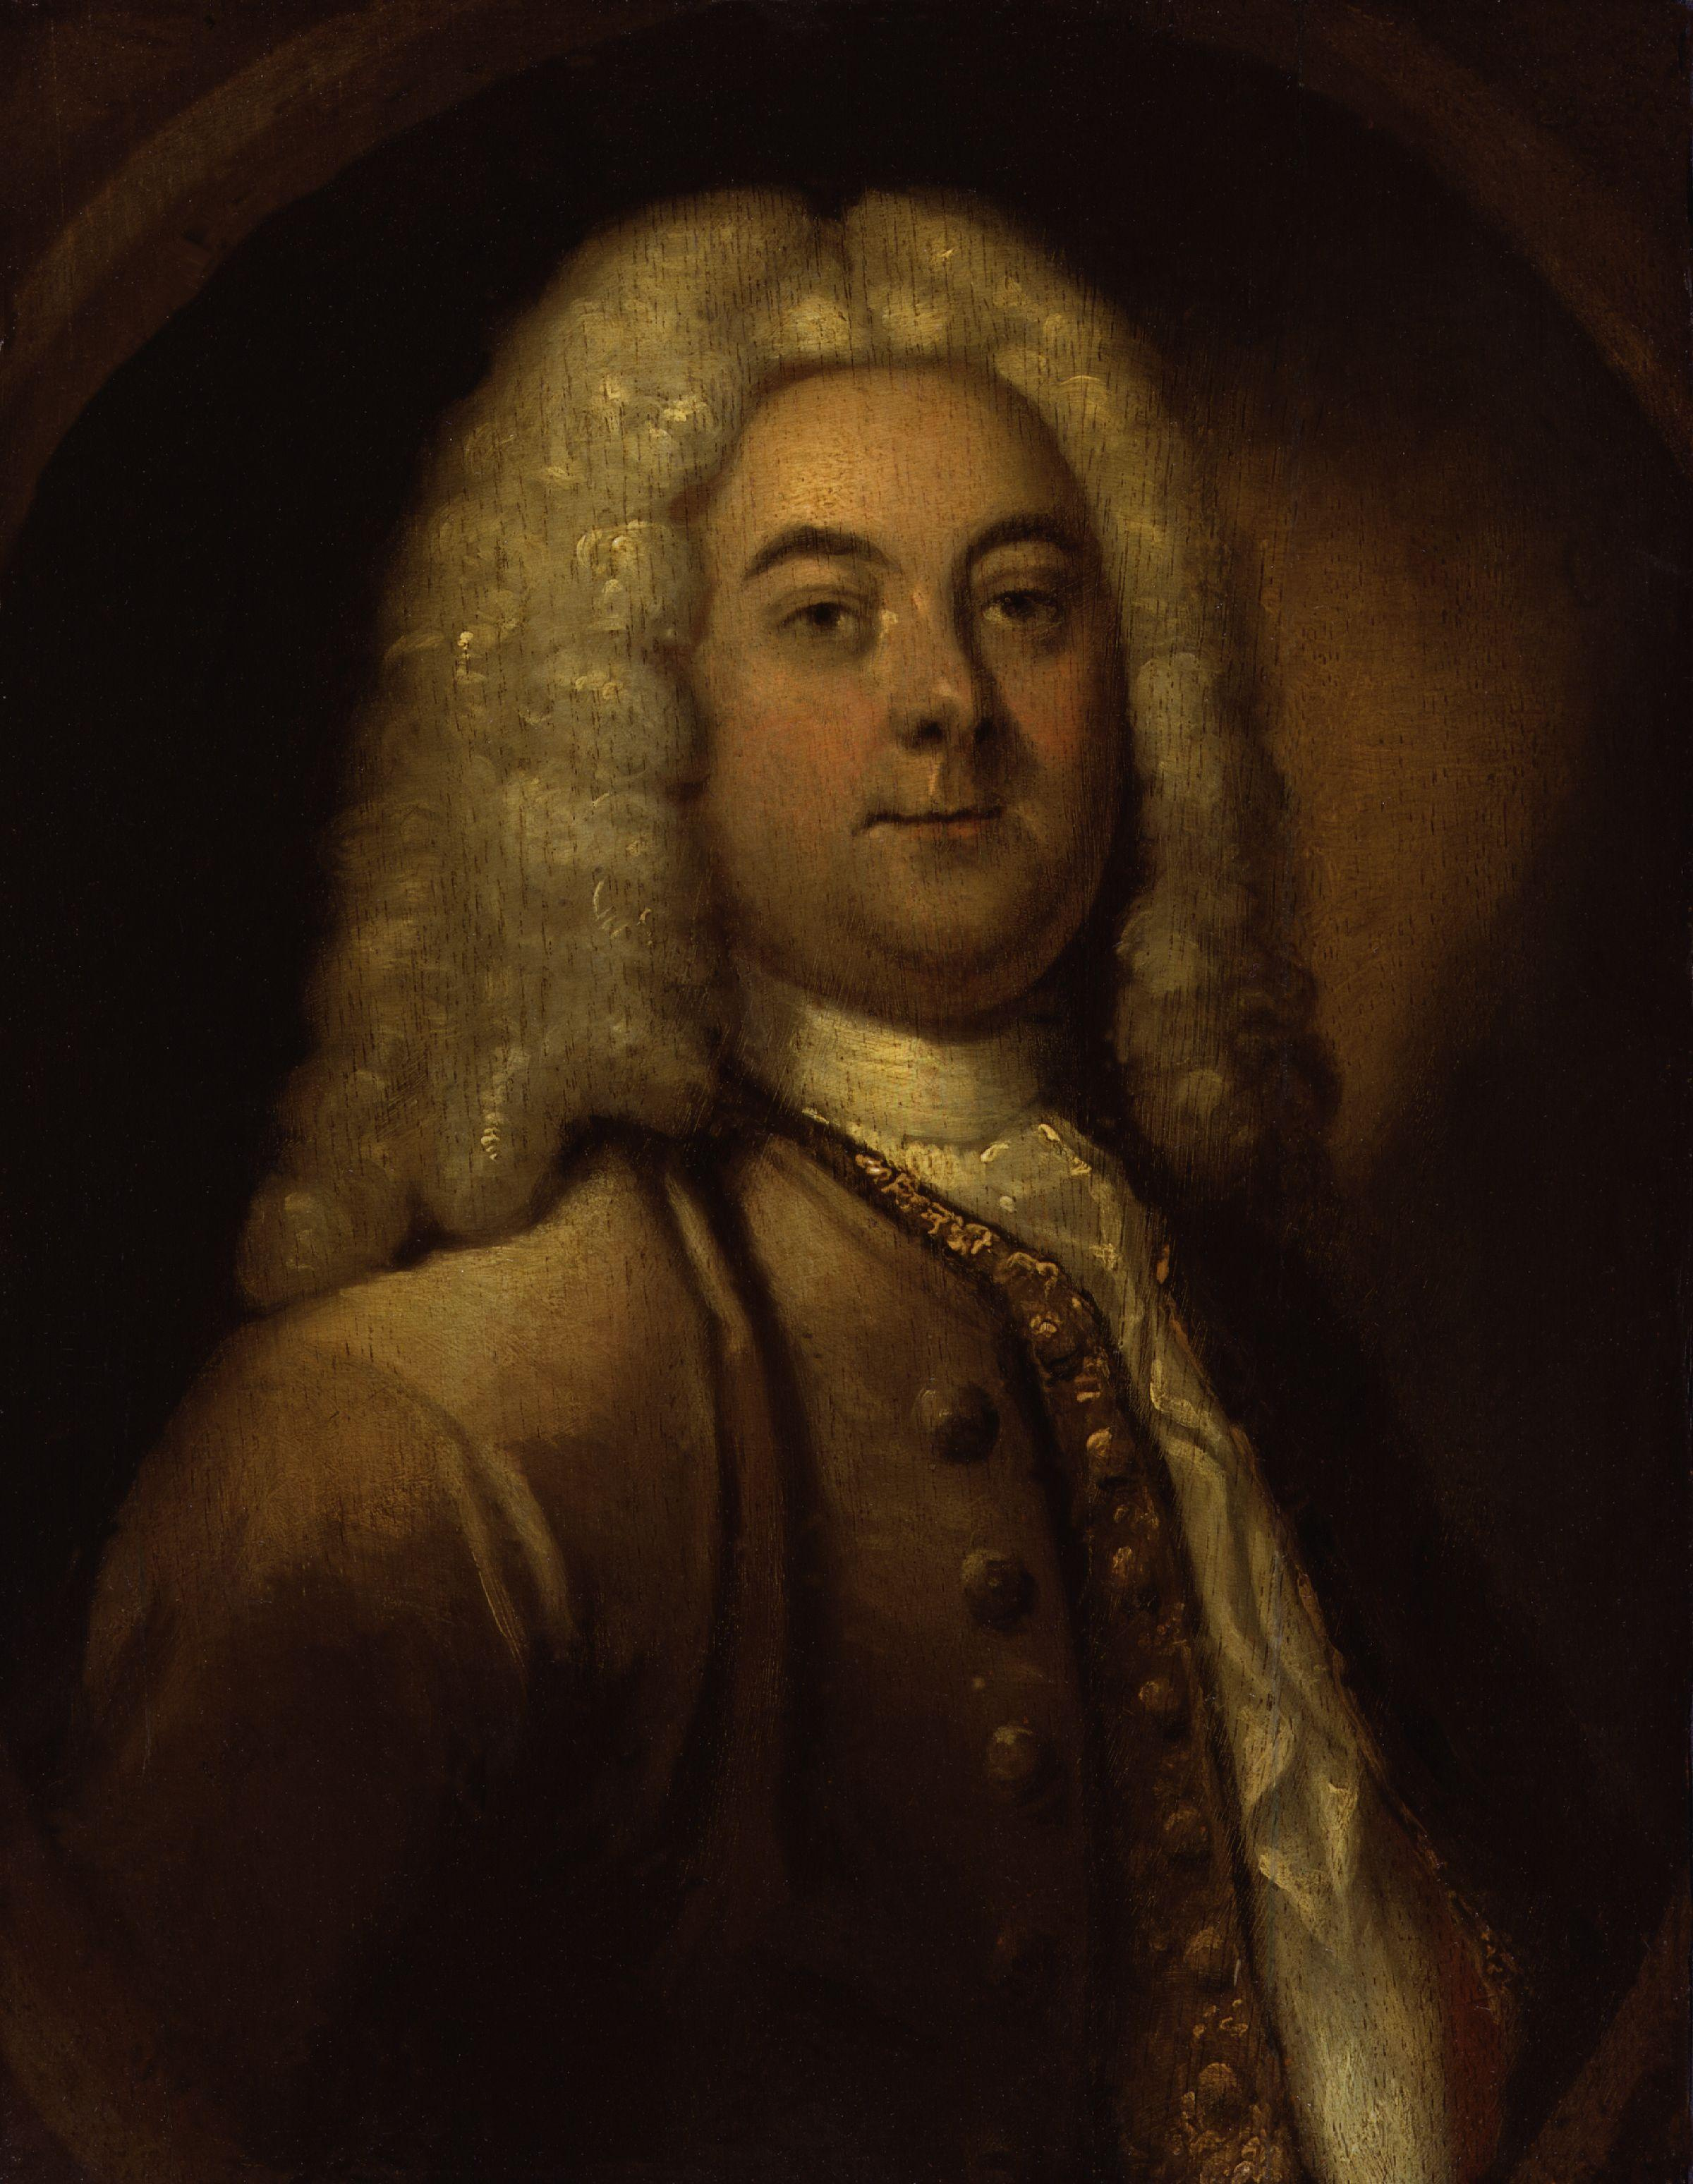 Description george frideric handel from npg